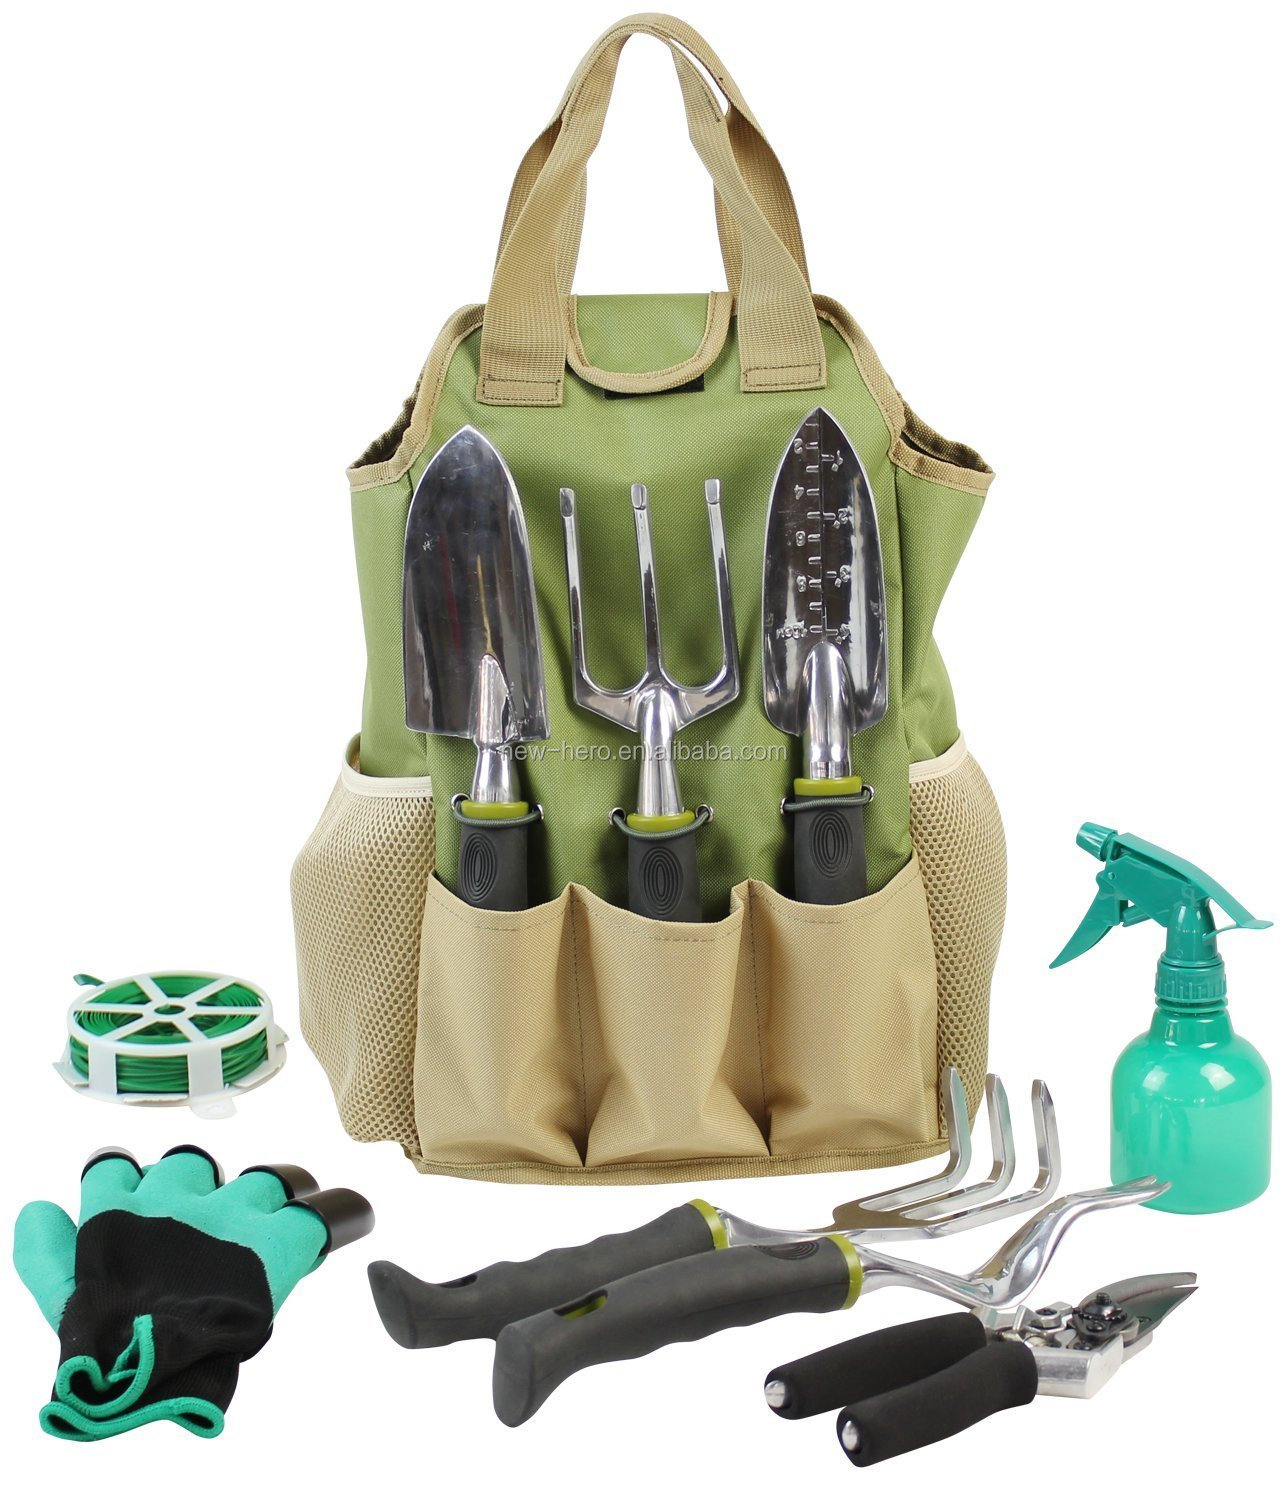 Best Gardening Gift Set Vegetable Garden Tool Kit Gardening Hand